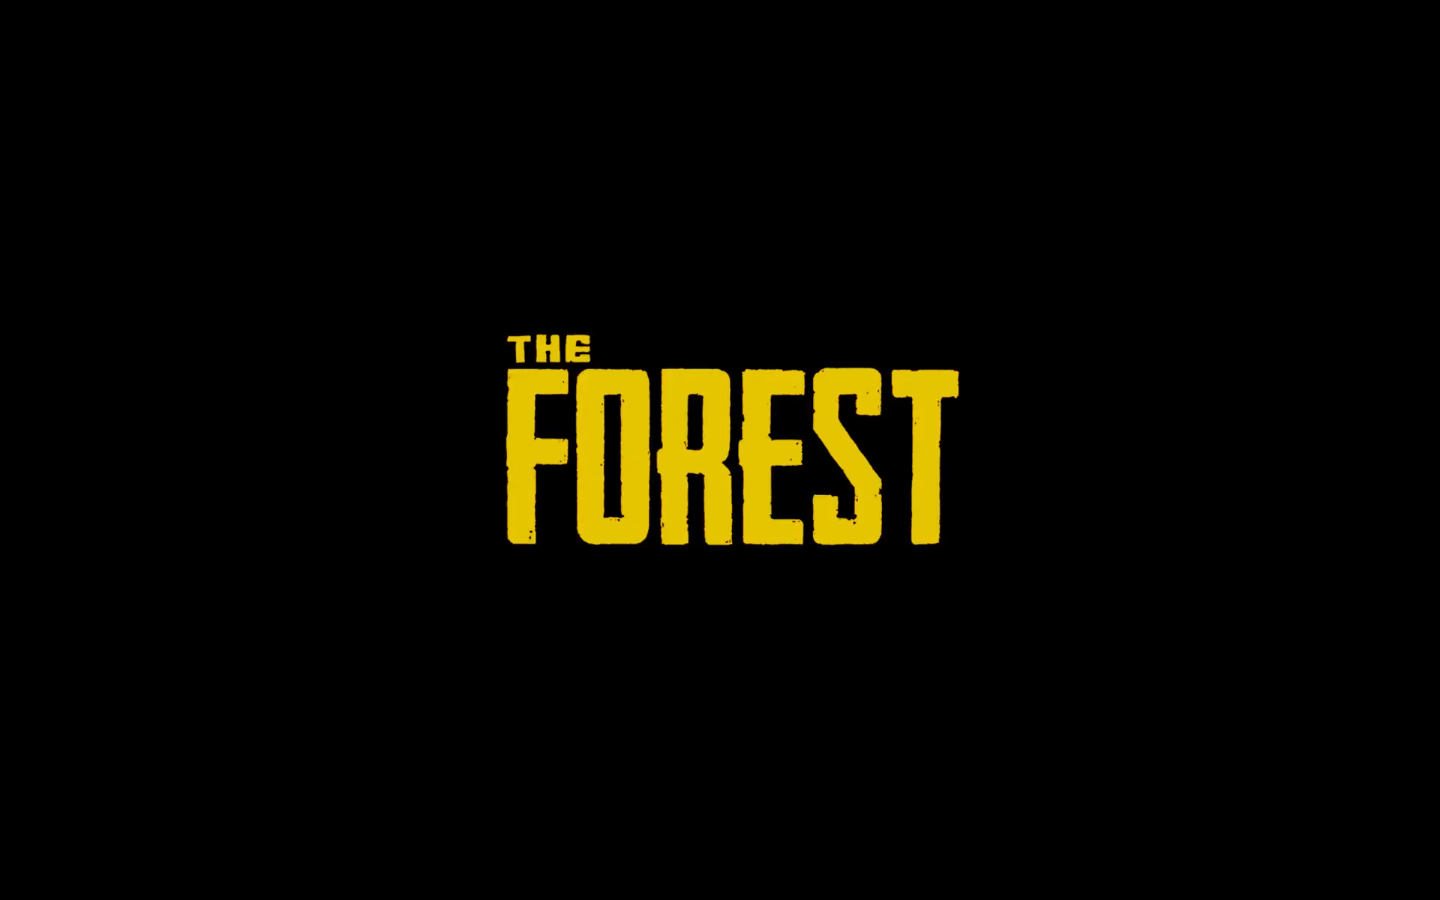 The Forest Logo From The Open World Survival Horror Game By Endnight Games Realite Virtuelle Realite Augmentee Jeux Video